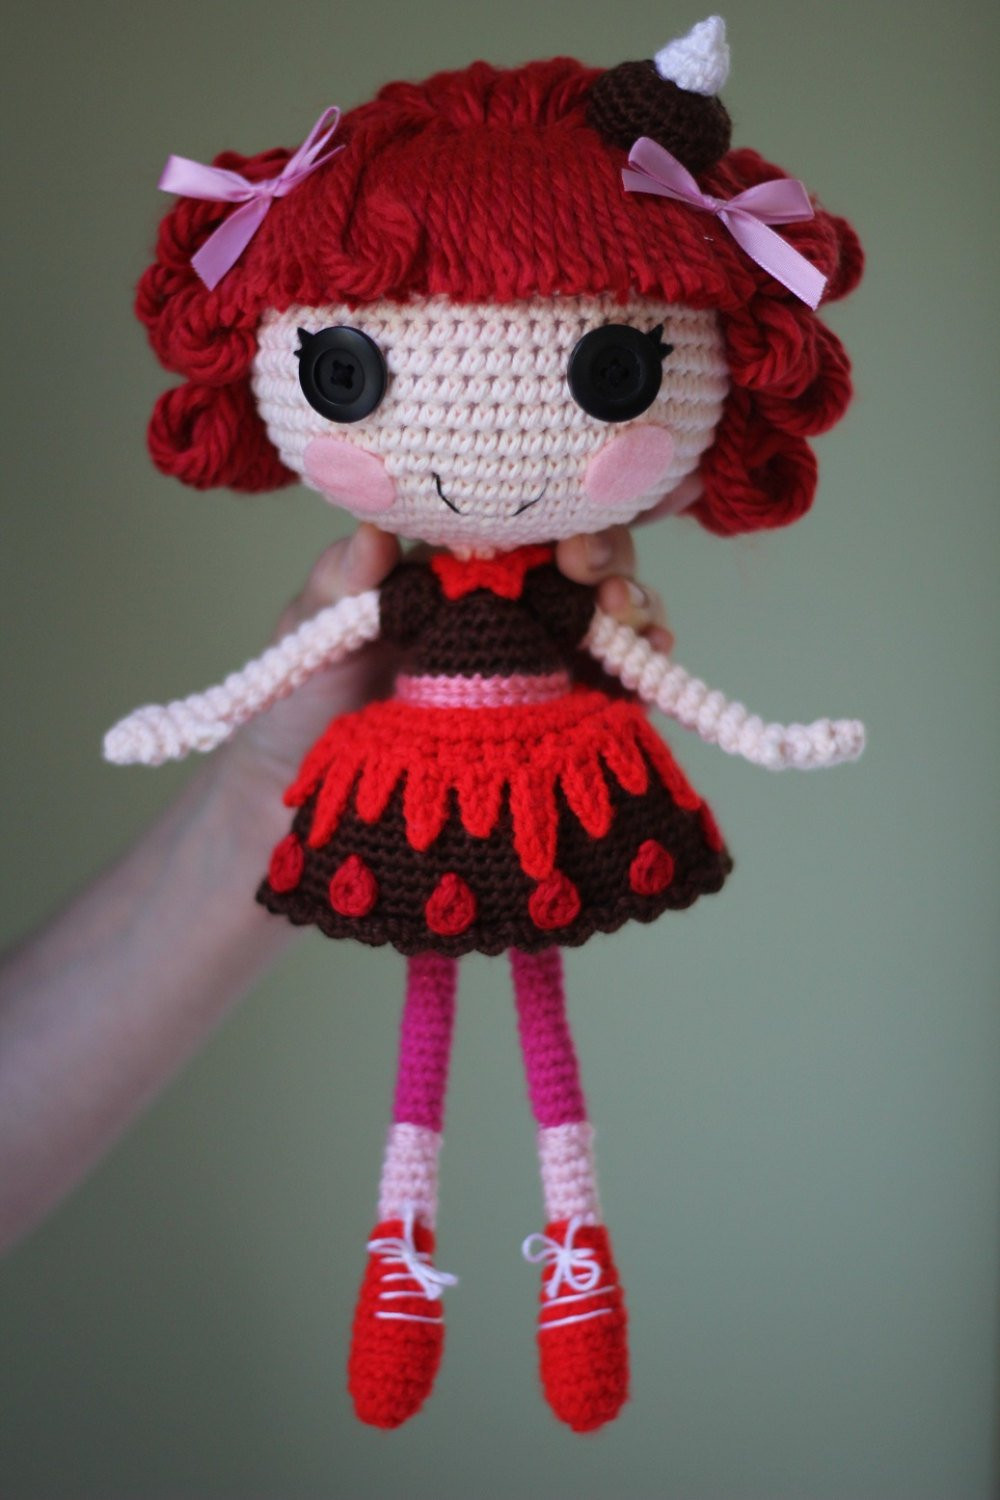 Crochet Doll Awesome Pattern Choco Crochet Amigurumi Doll Of Delightful 47 Pictures Crochet Doll